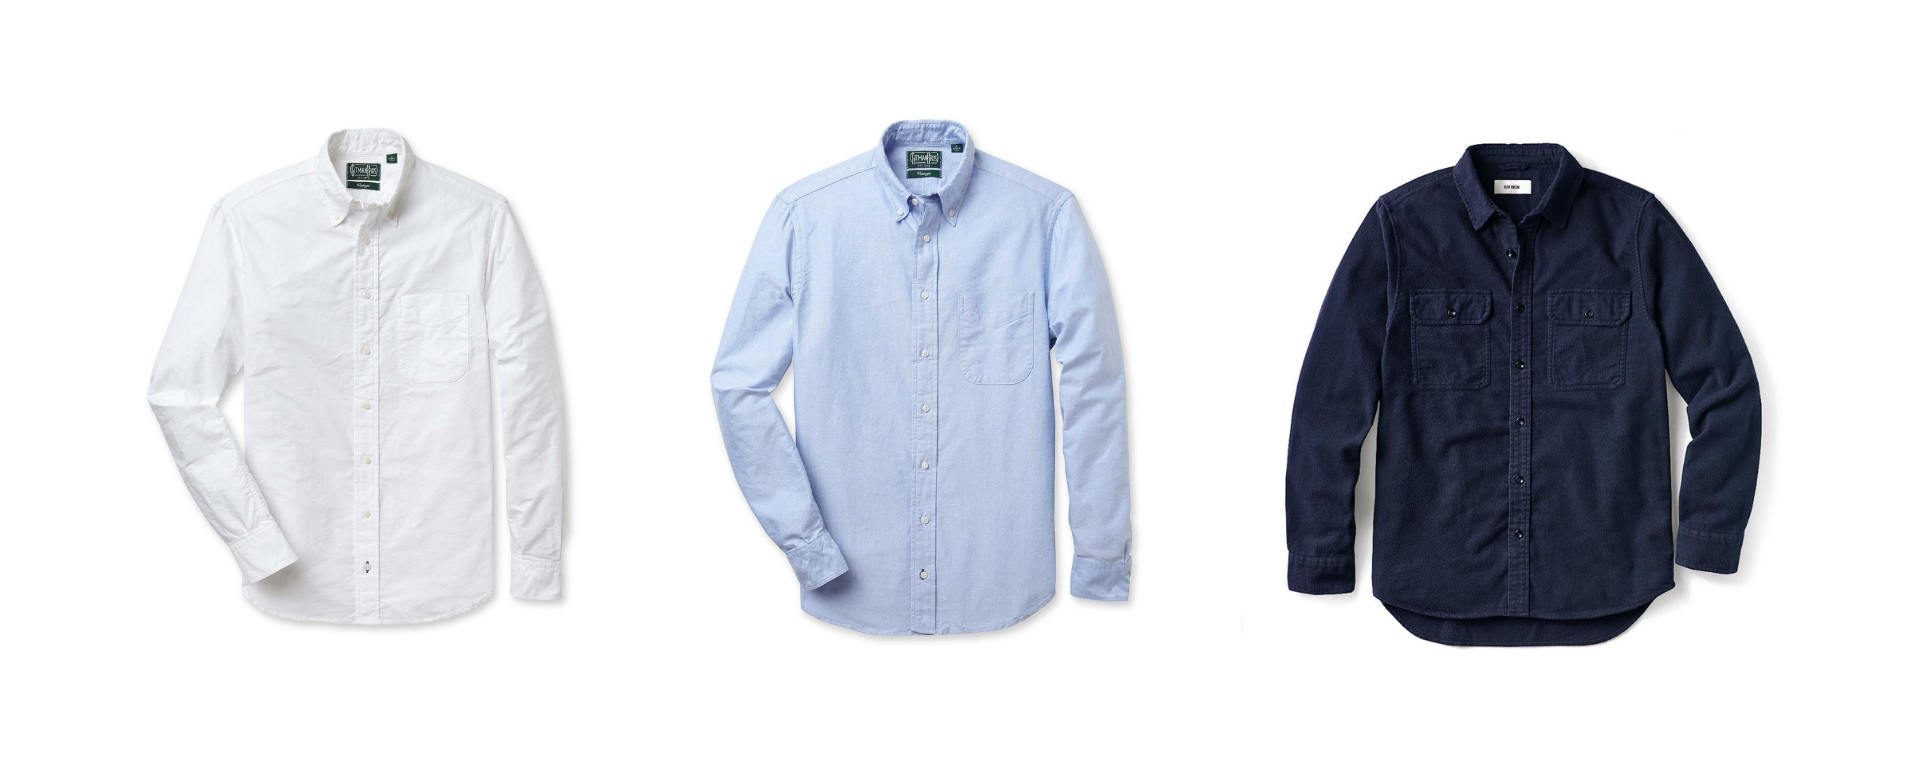 Smart casual shirts fw